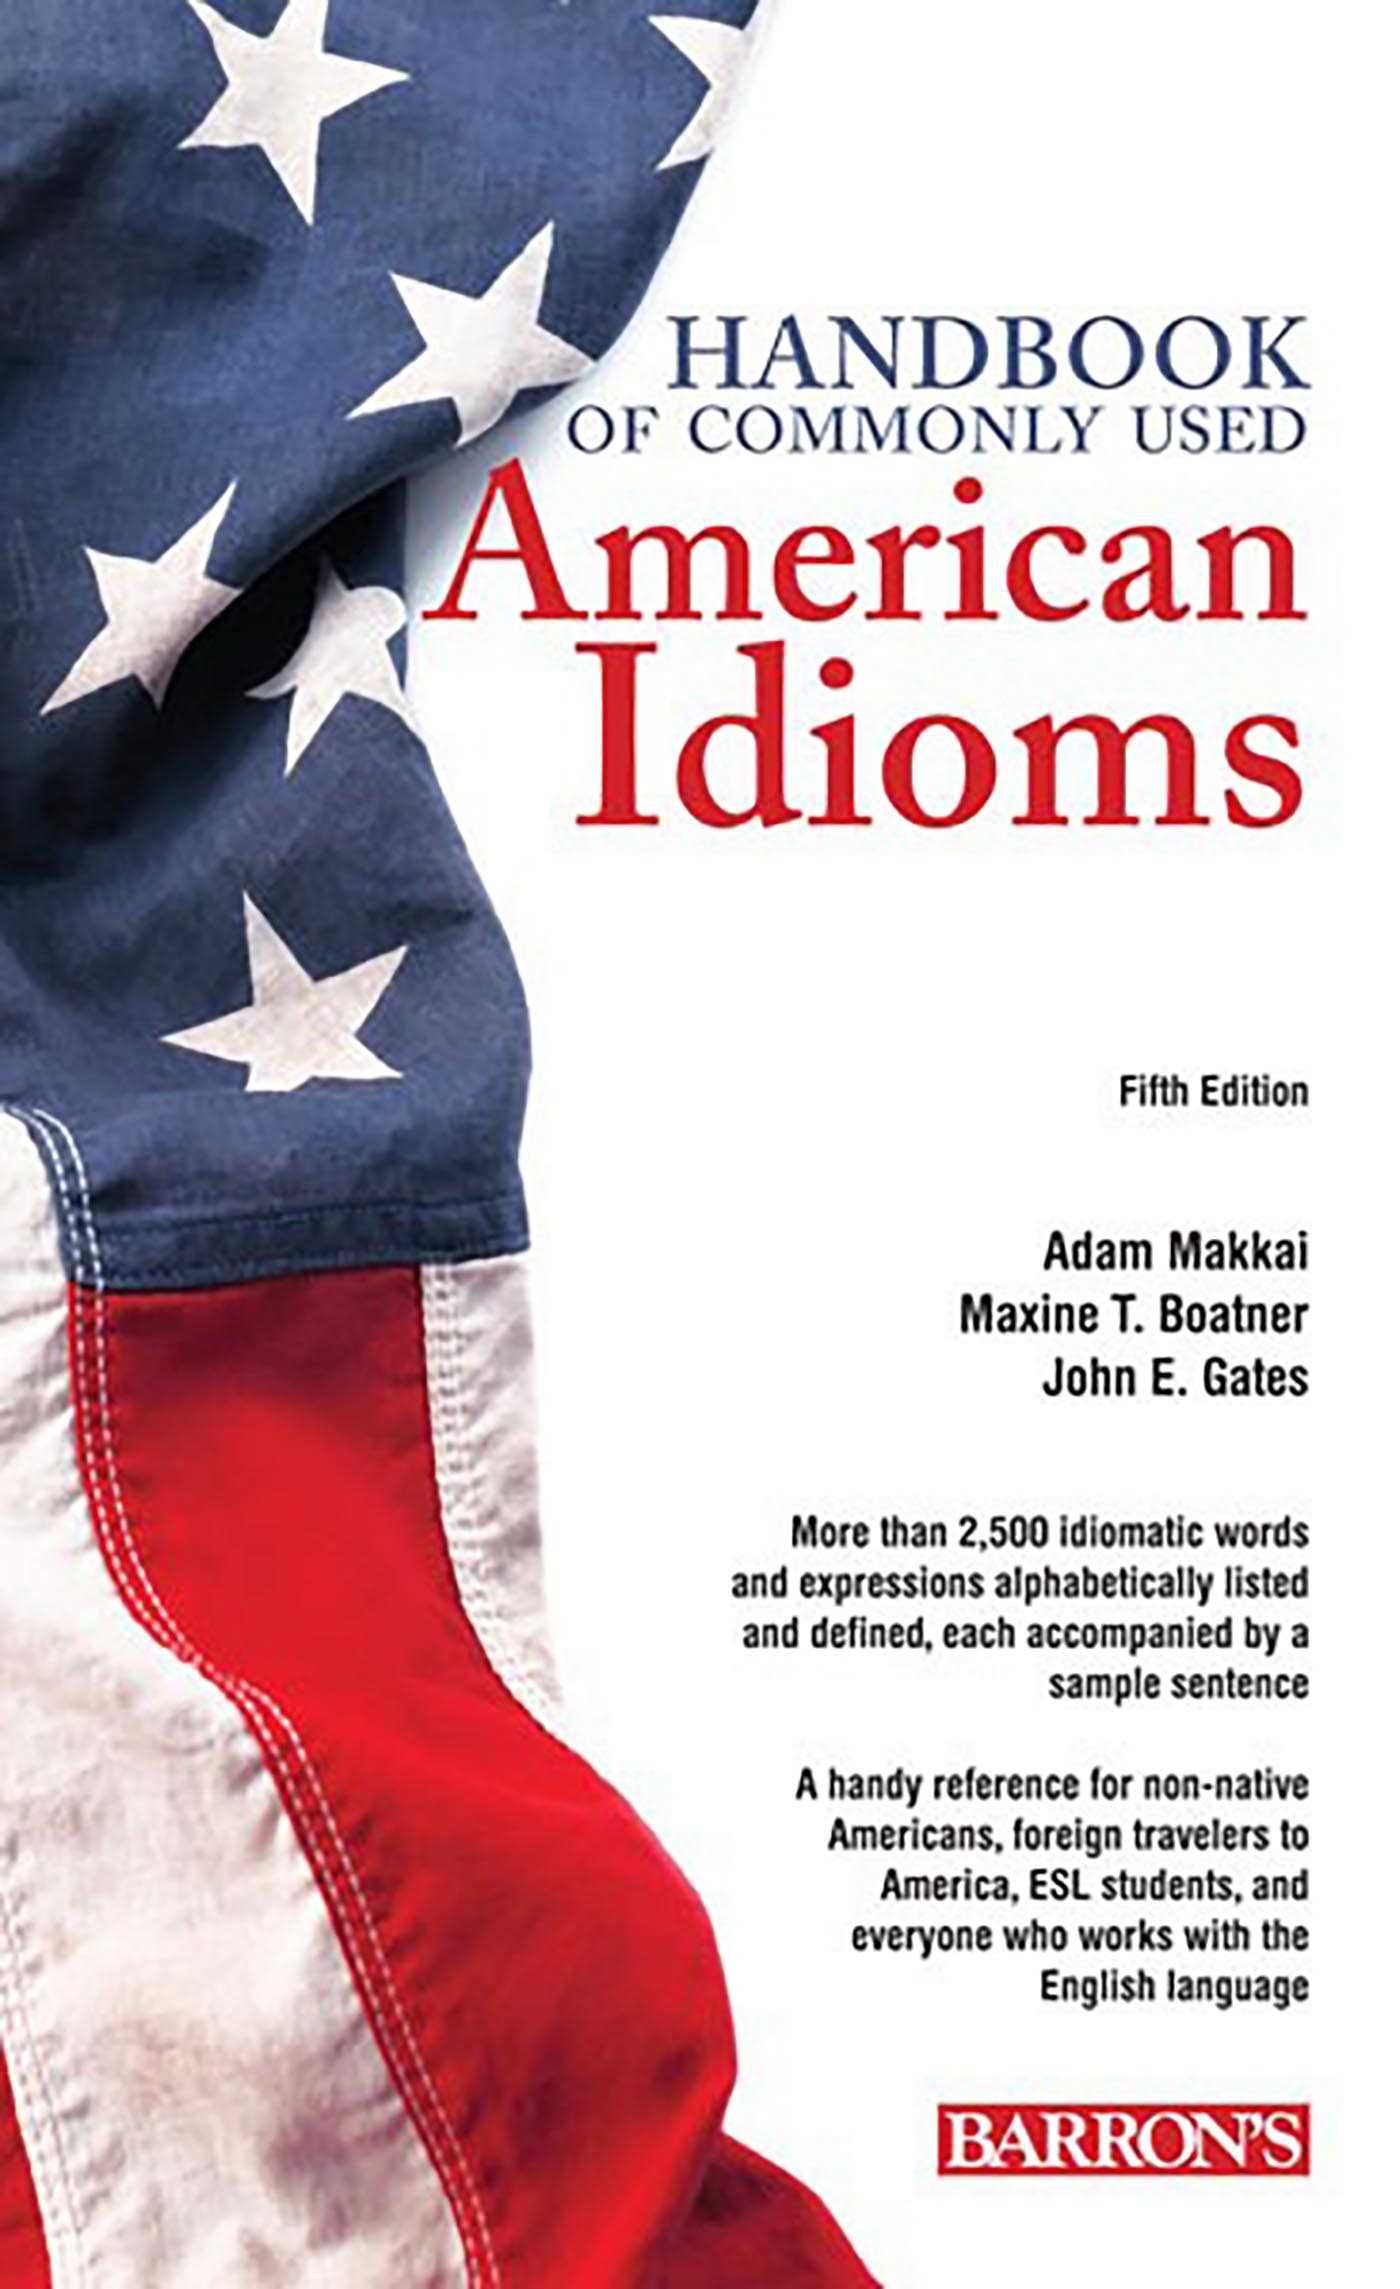 Book Cover Image (jpg): Handbook of Commonly Used American Idioms